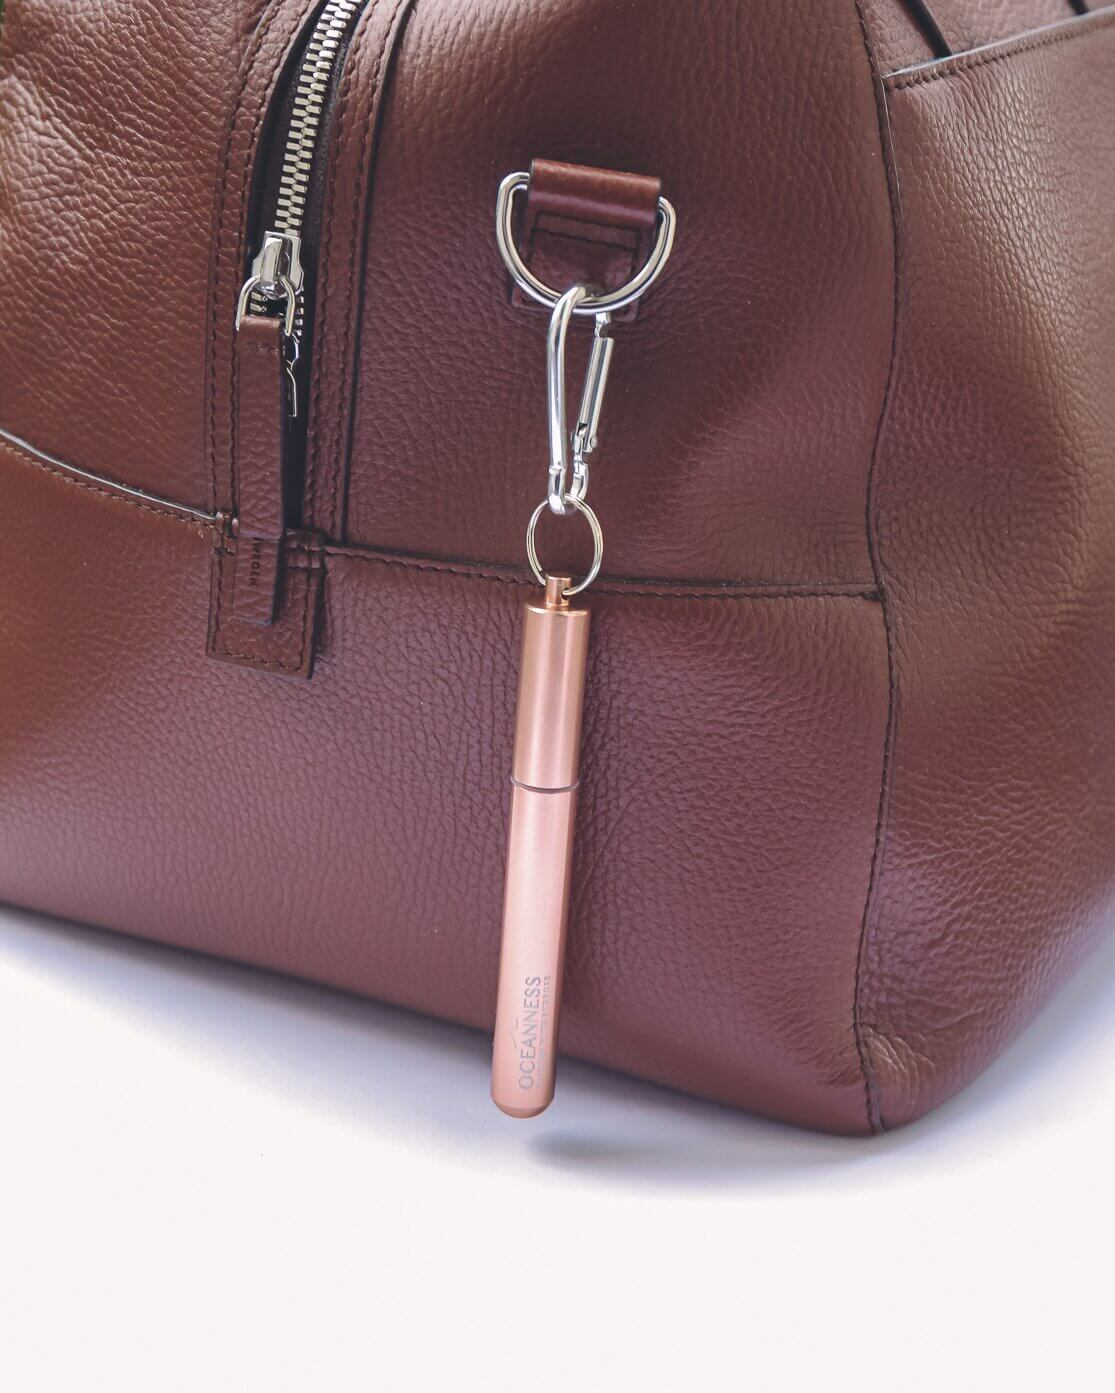 Oceanness rose gold reusable travel straw hanging on a bag with carabiner